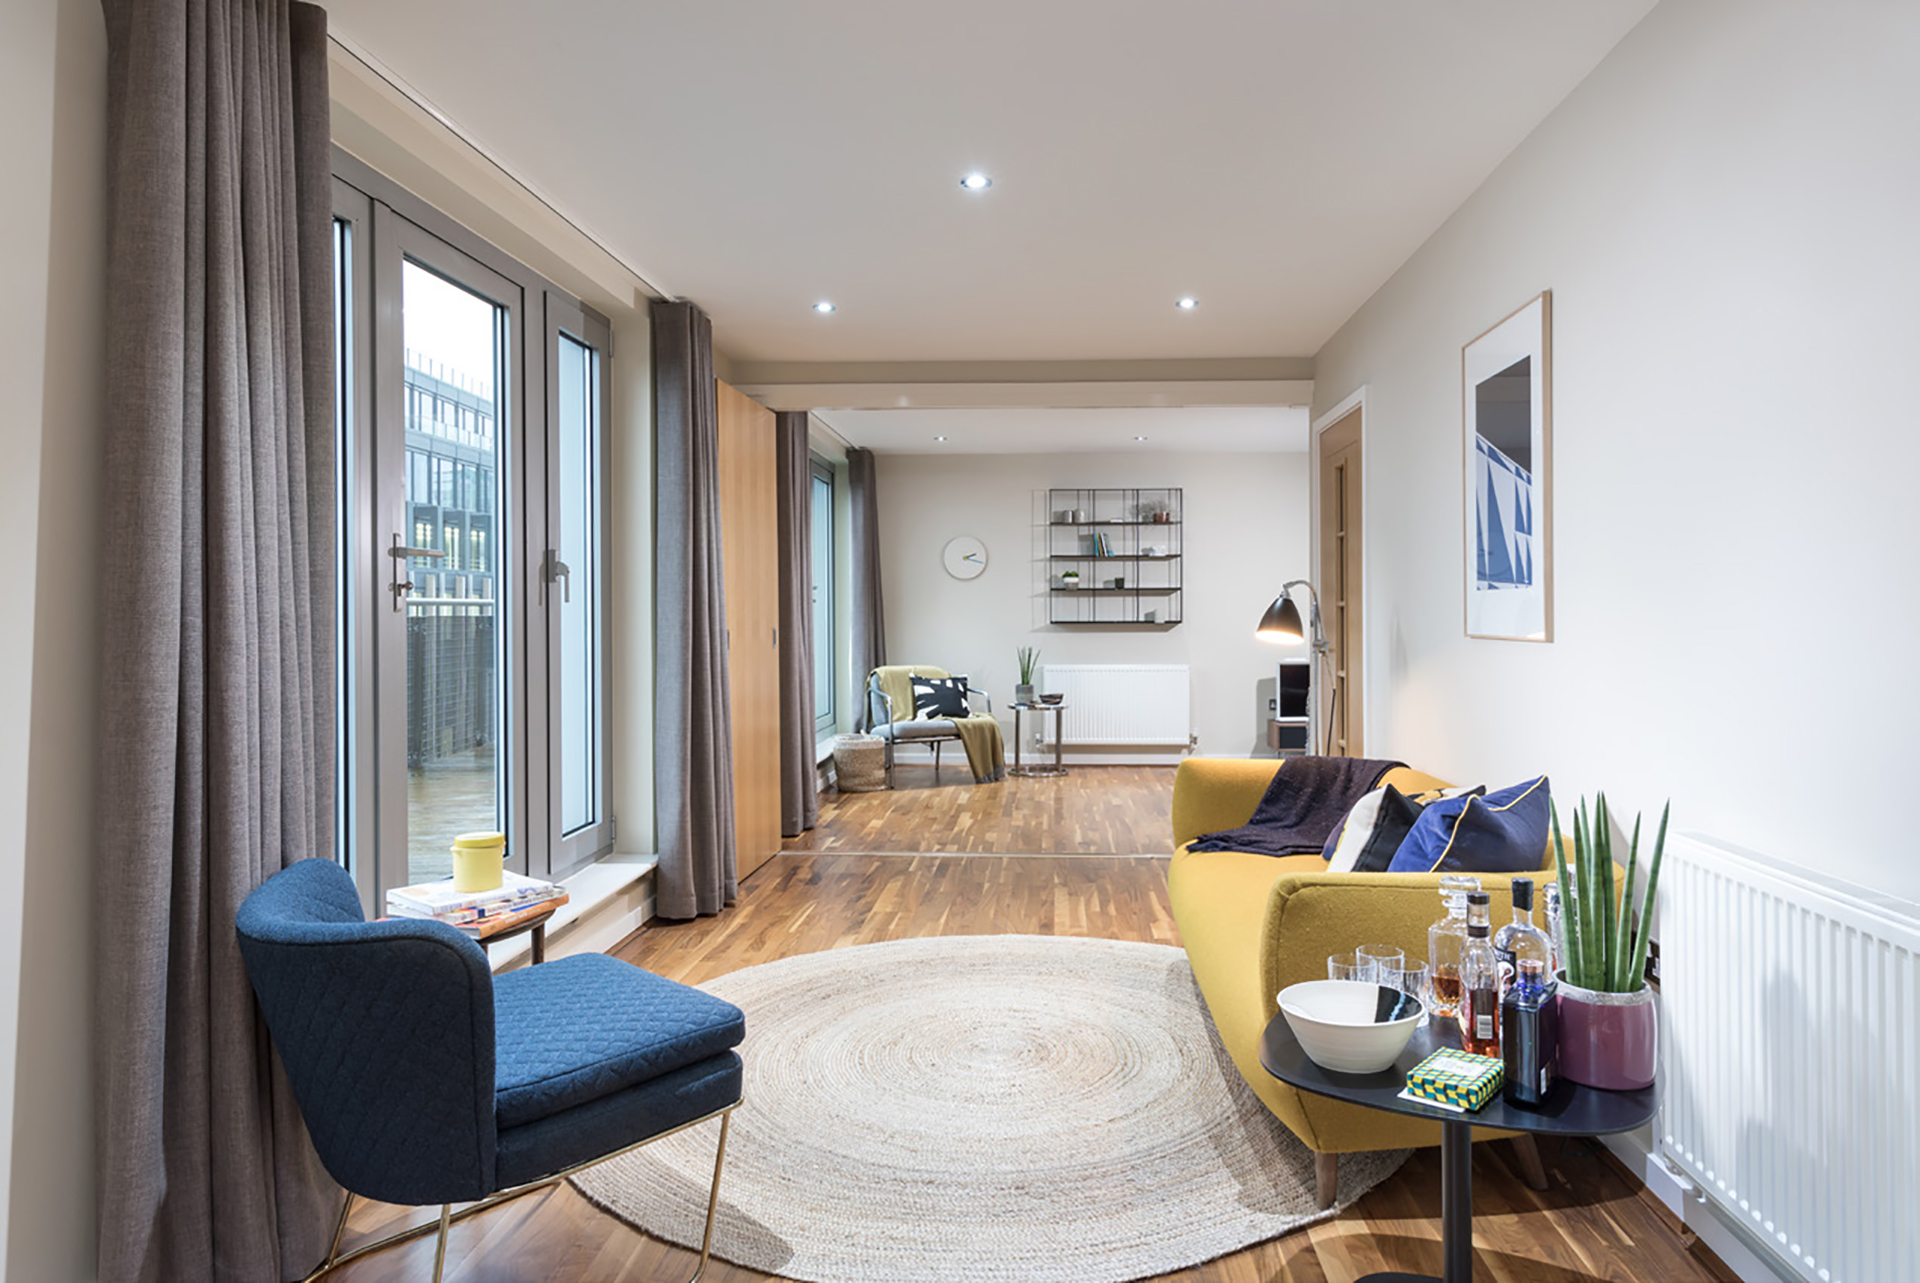 image of the interior in the stamford street property